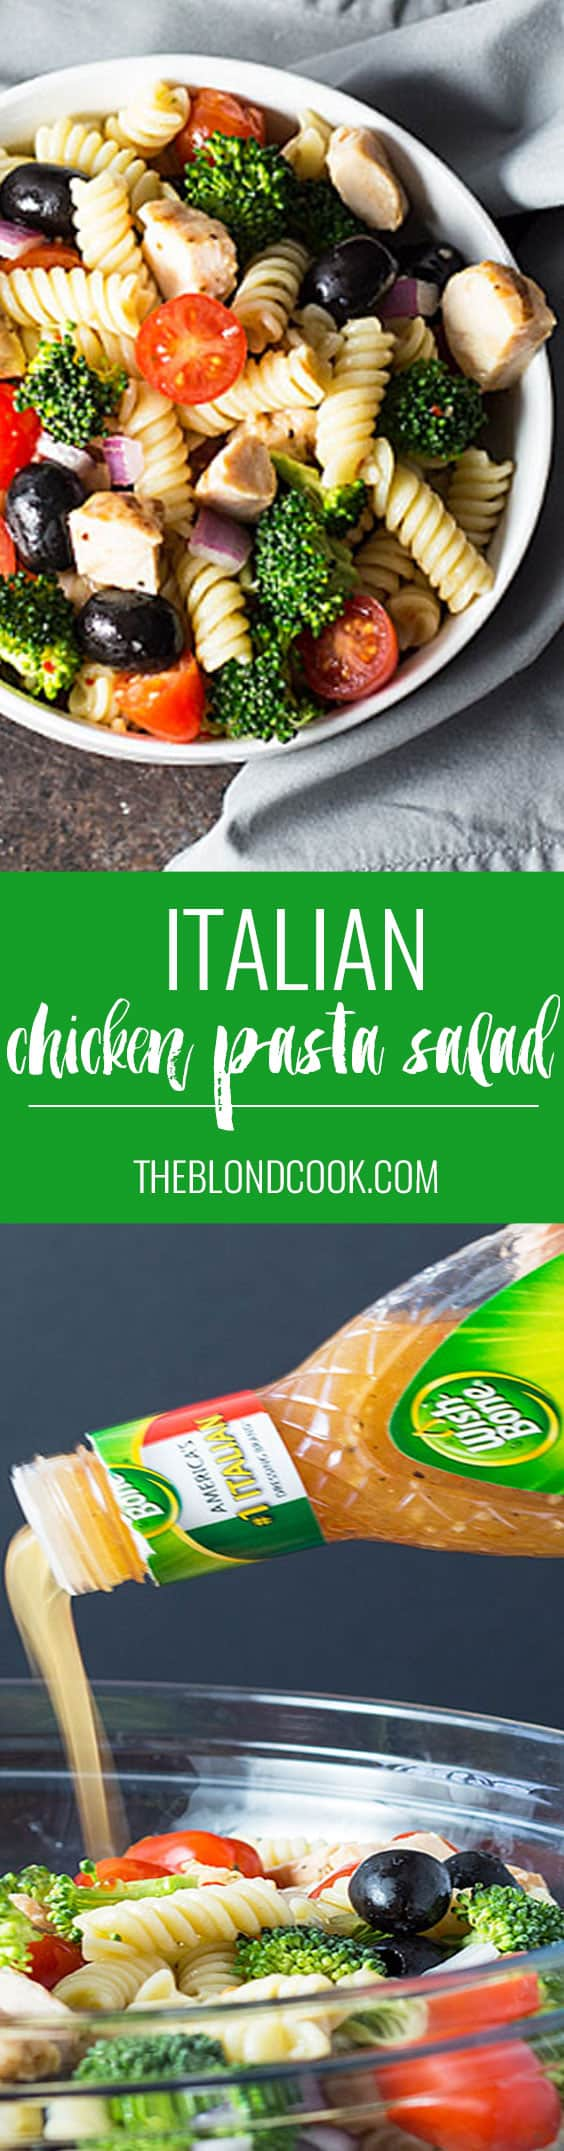 Italian Chicken Pasta Salad -- A hearty pasta salad packed with chicken, red onion, broccoli, tomatoes and black olives | theblondcook.com